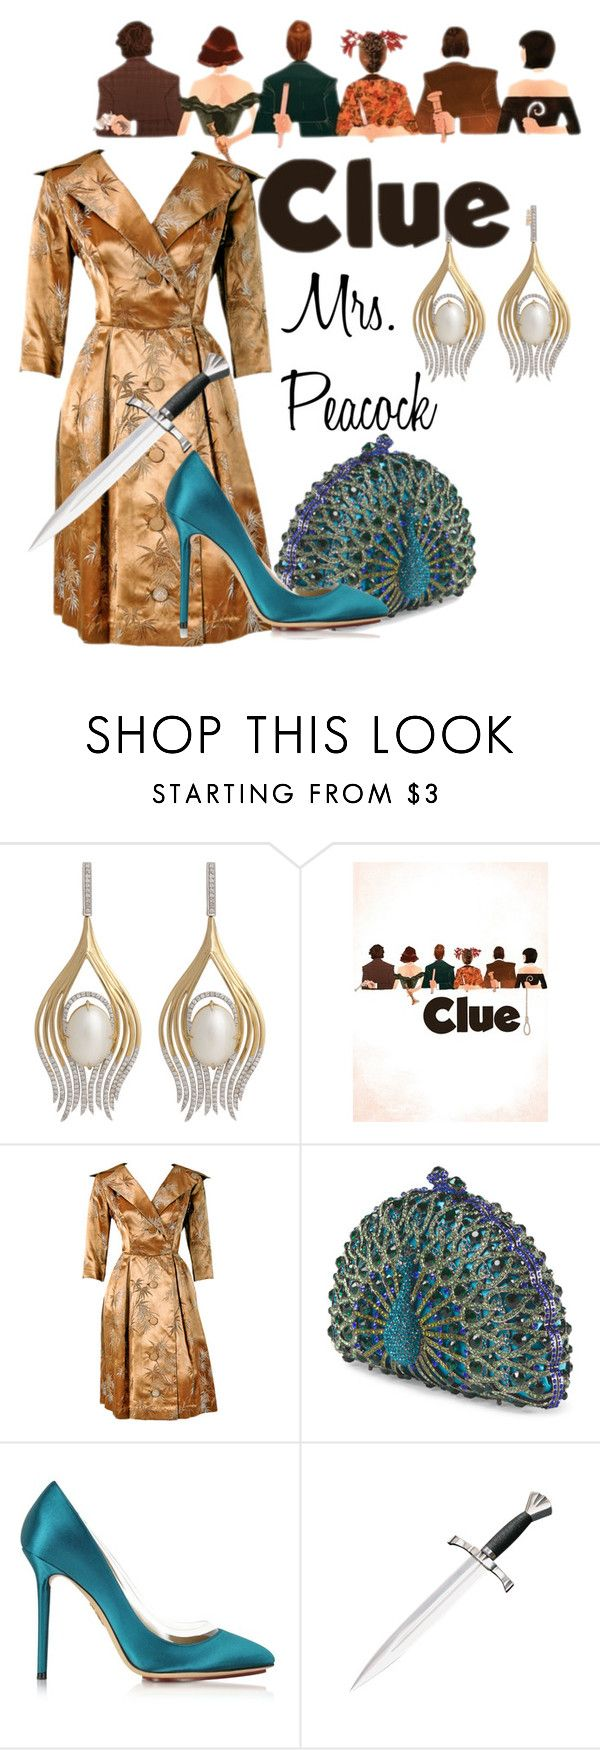 """Mrs. Peacock from Clue"" by laniocracy ❤ liked on Polyvore featuring Ana Khouri and Charlotte Olympia"